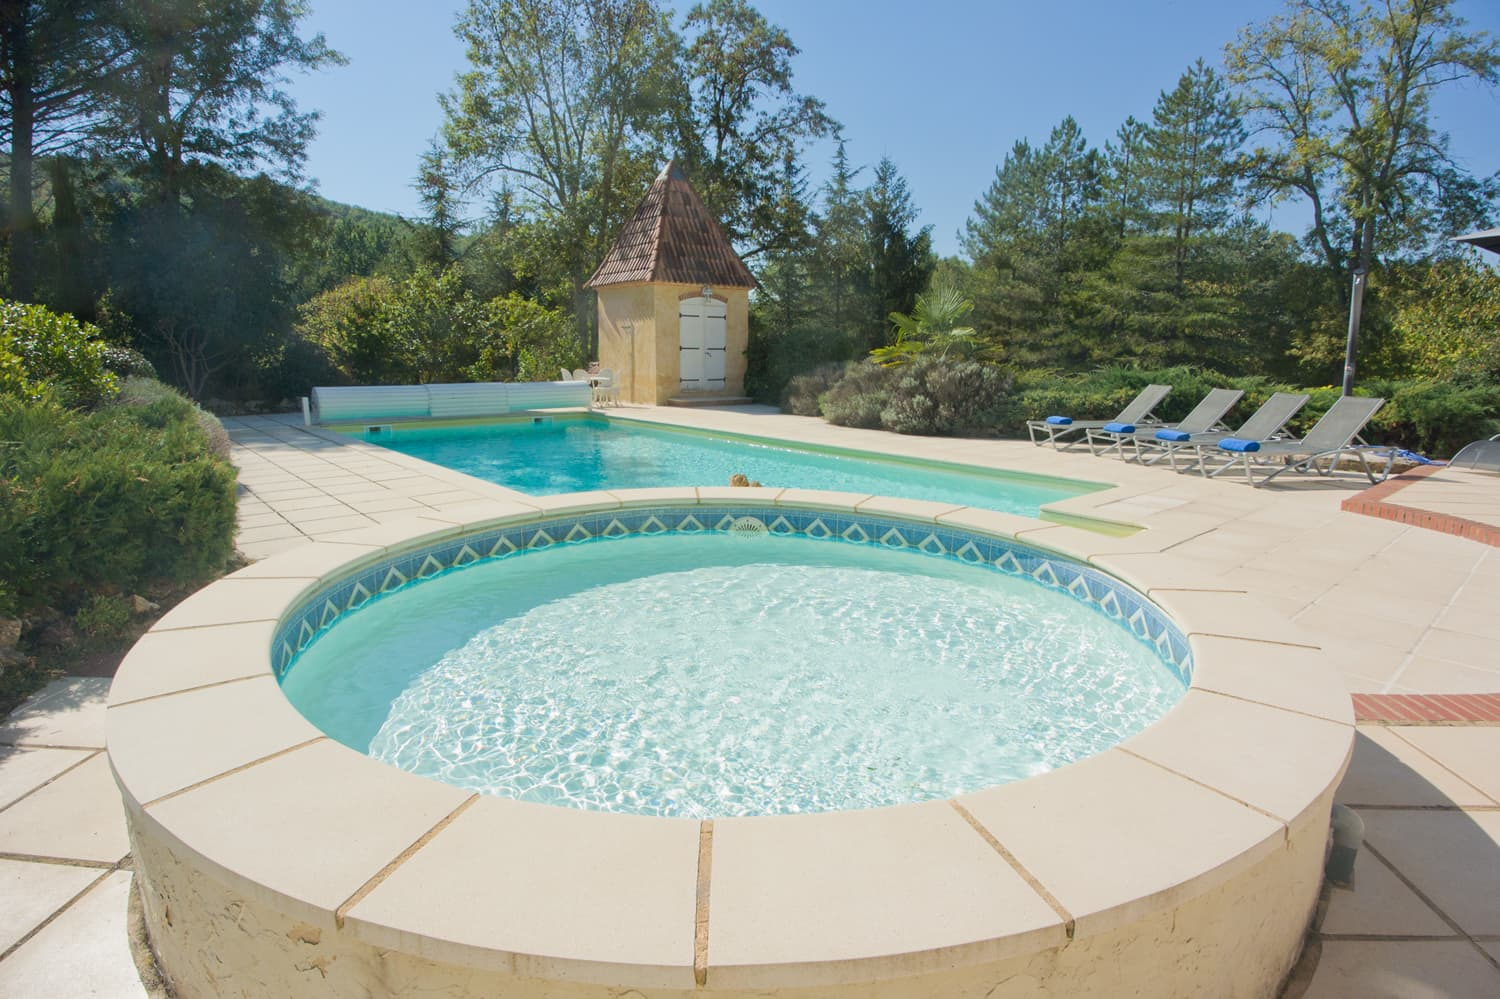 Private, heated pool with children's pool